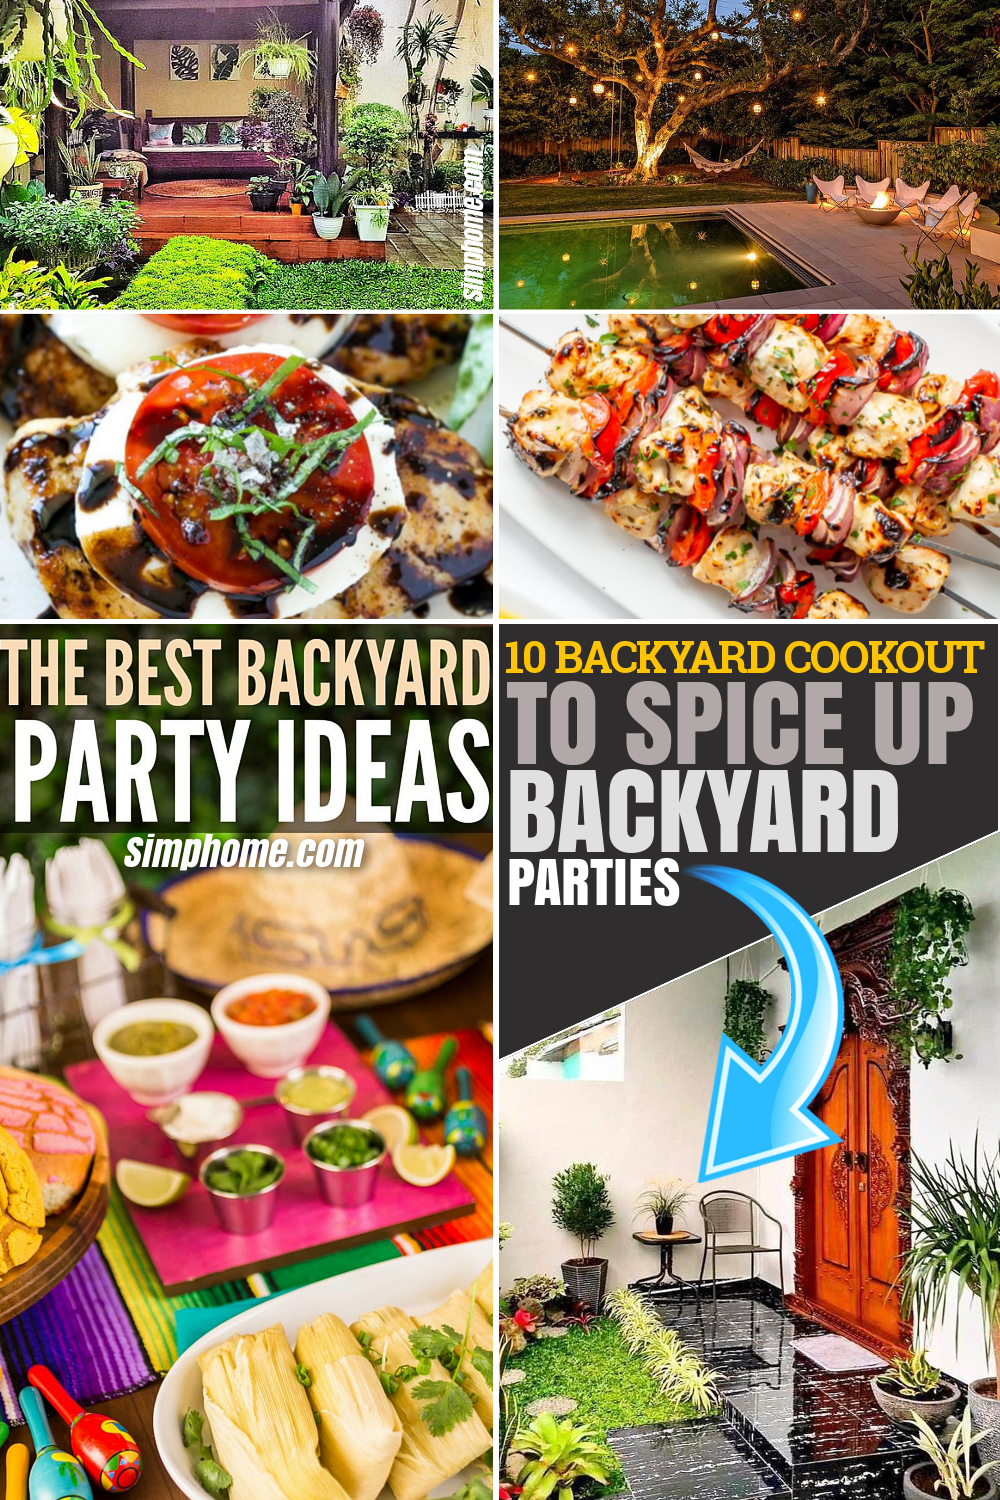 10 Backyard Cookout Ideas to Spice Up Your Backyard Party via Simphome.com Featured Pinterest Image